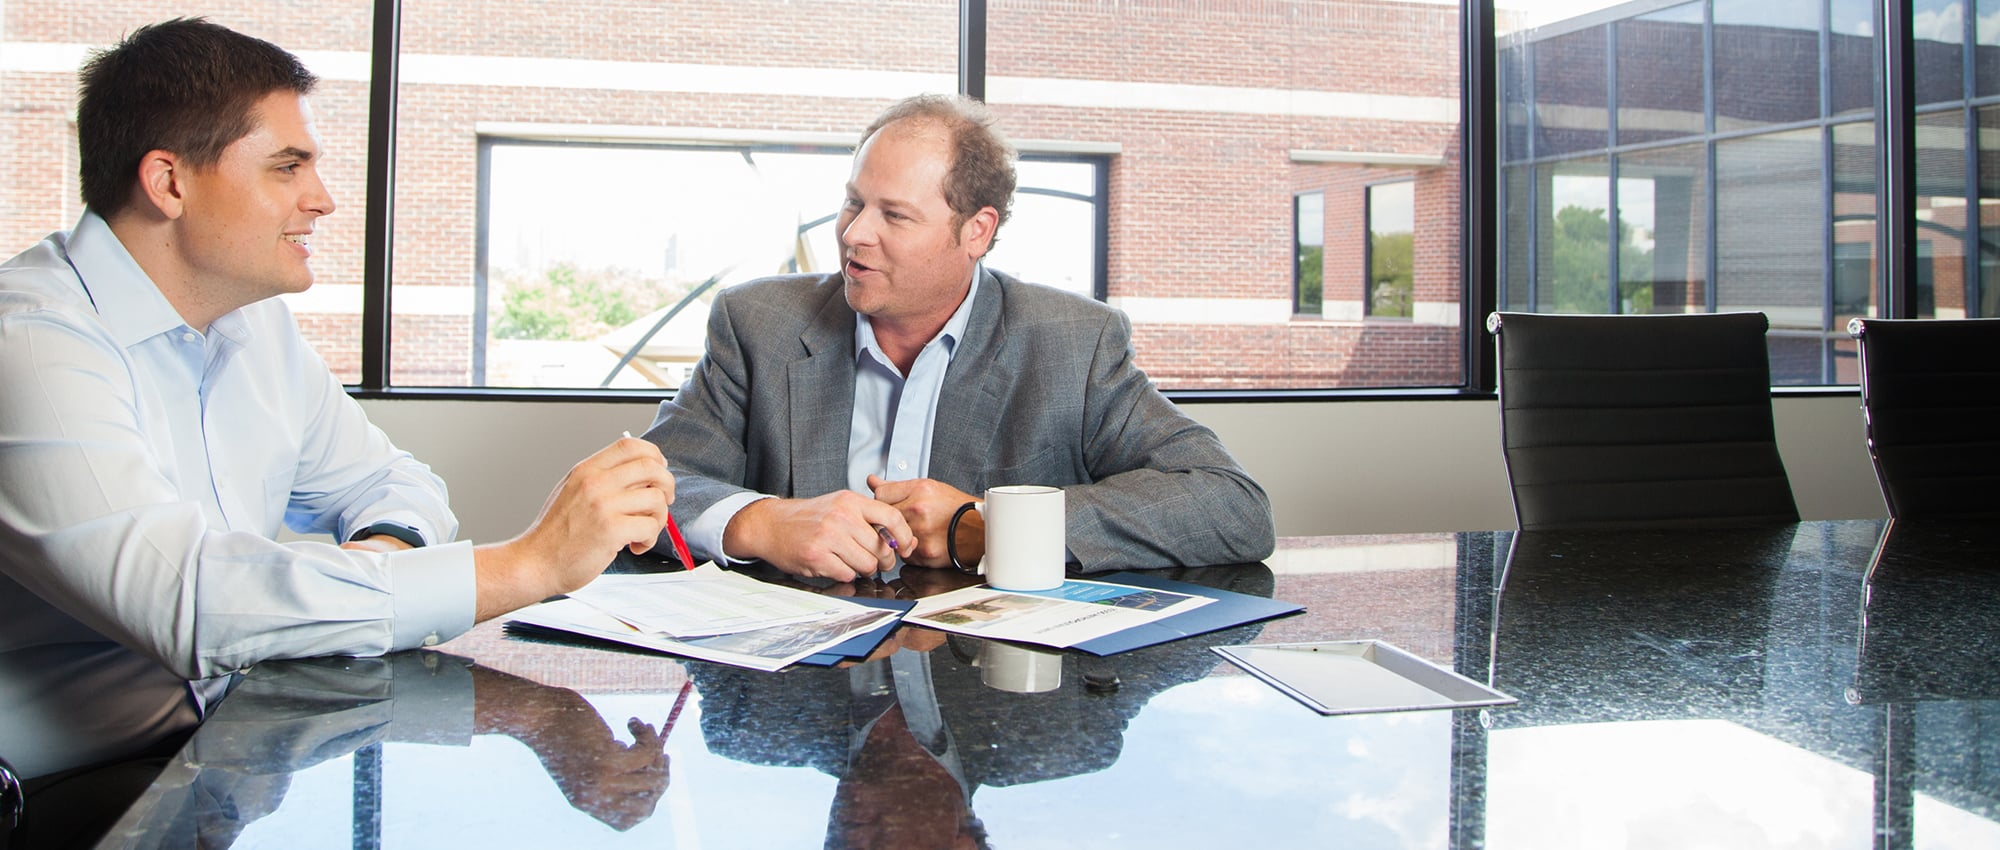 Points of Negotiation in Commercial Lease | Jason Faludi, AQUILA Commercial